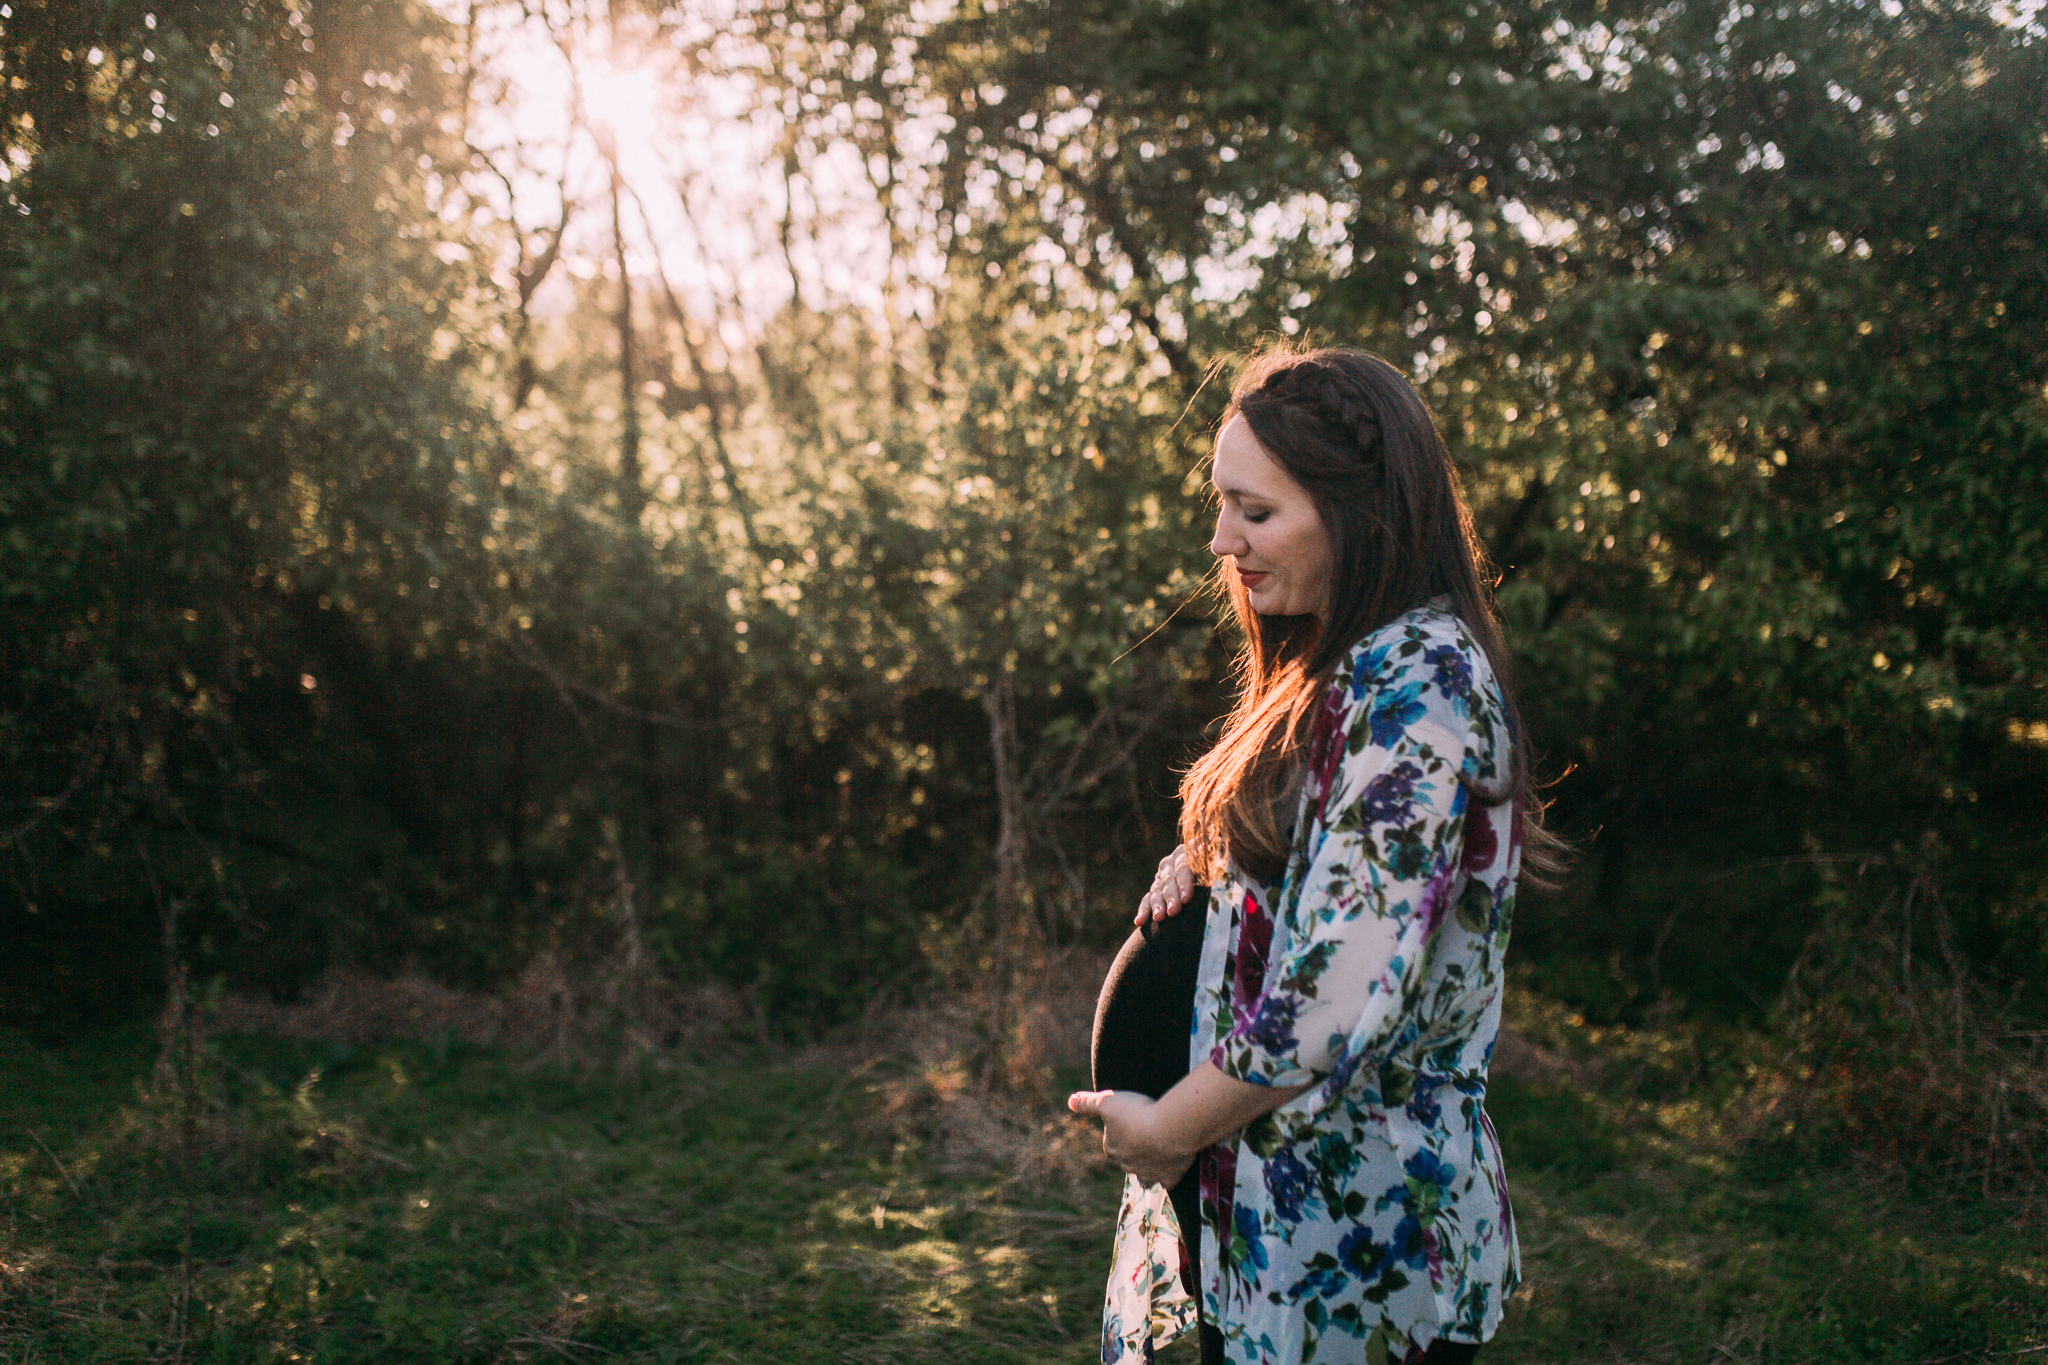 maternity motherhood family lifestyle documentary Claude Moore Park Sterling Loudoun Virginia Golden Hour Sunset spring Marti Austin Photography